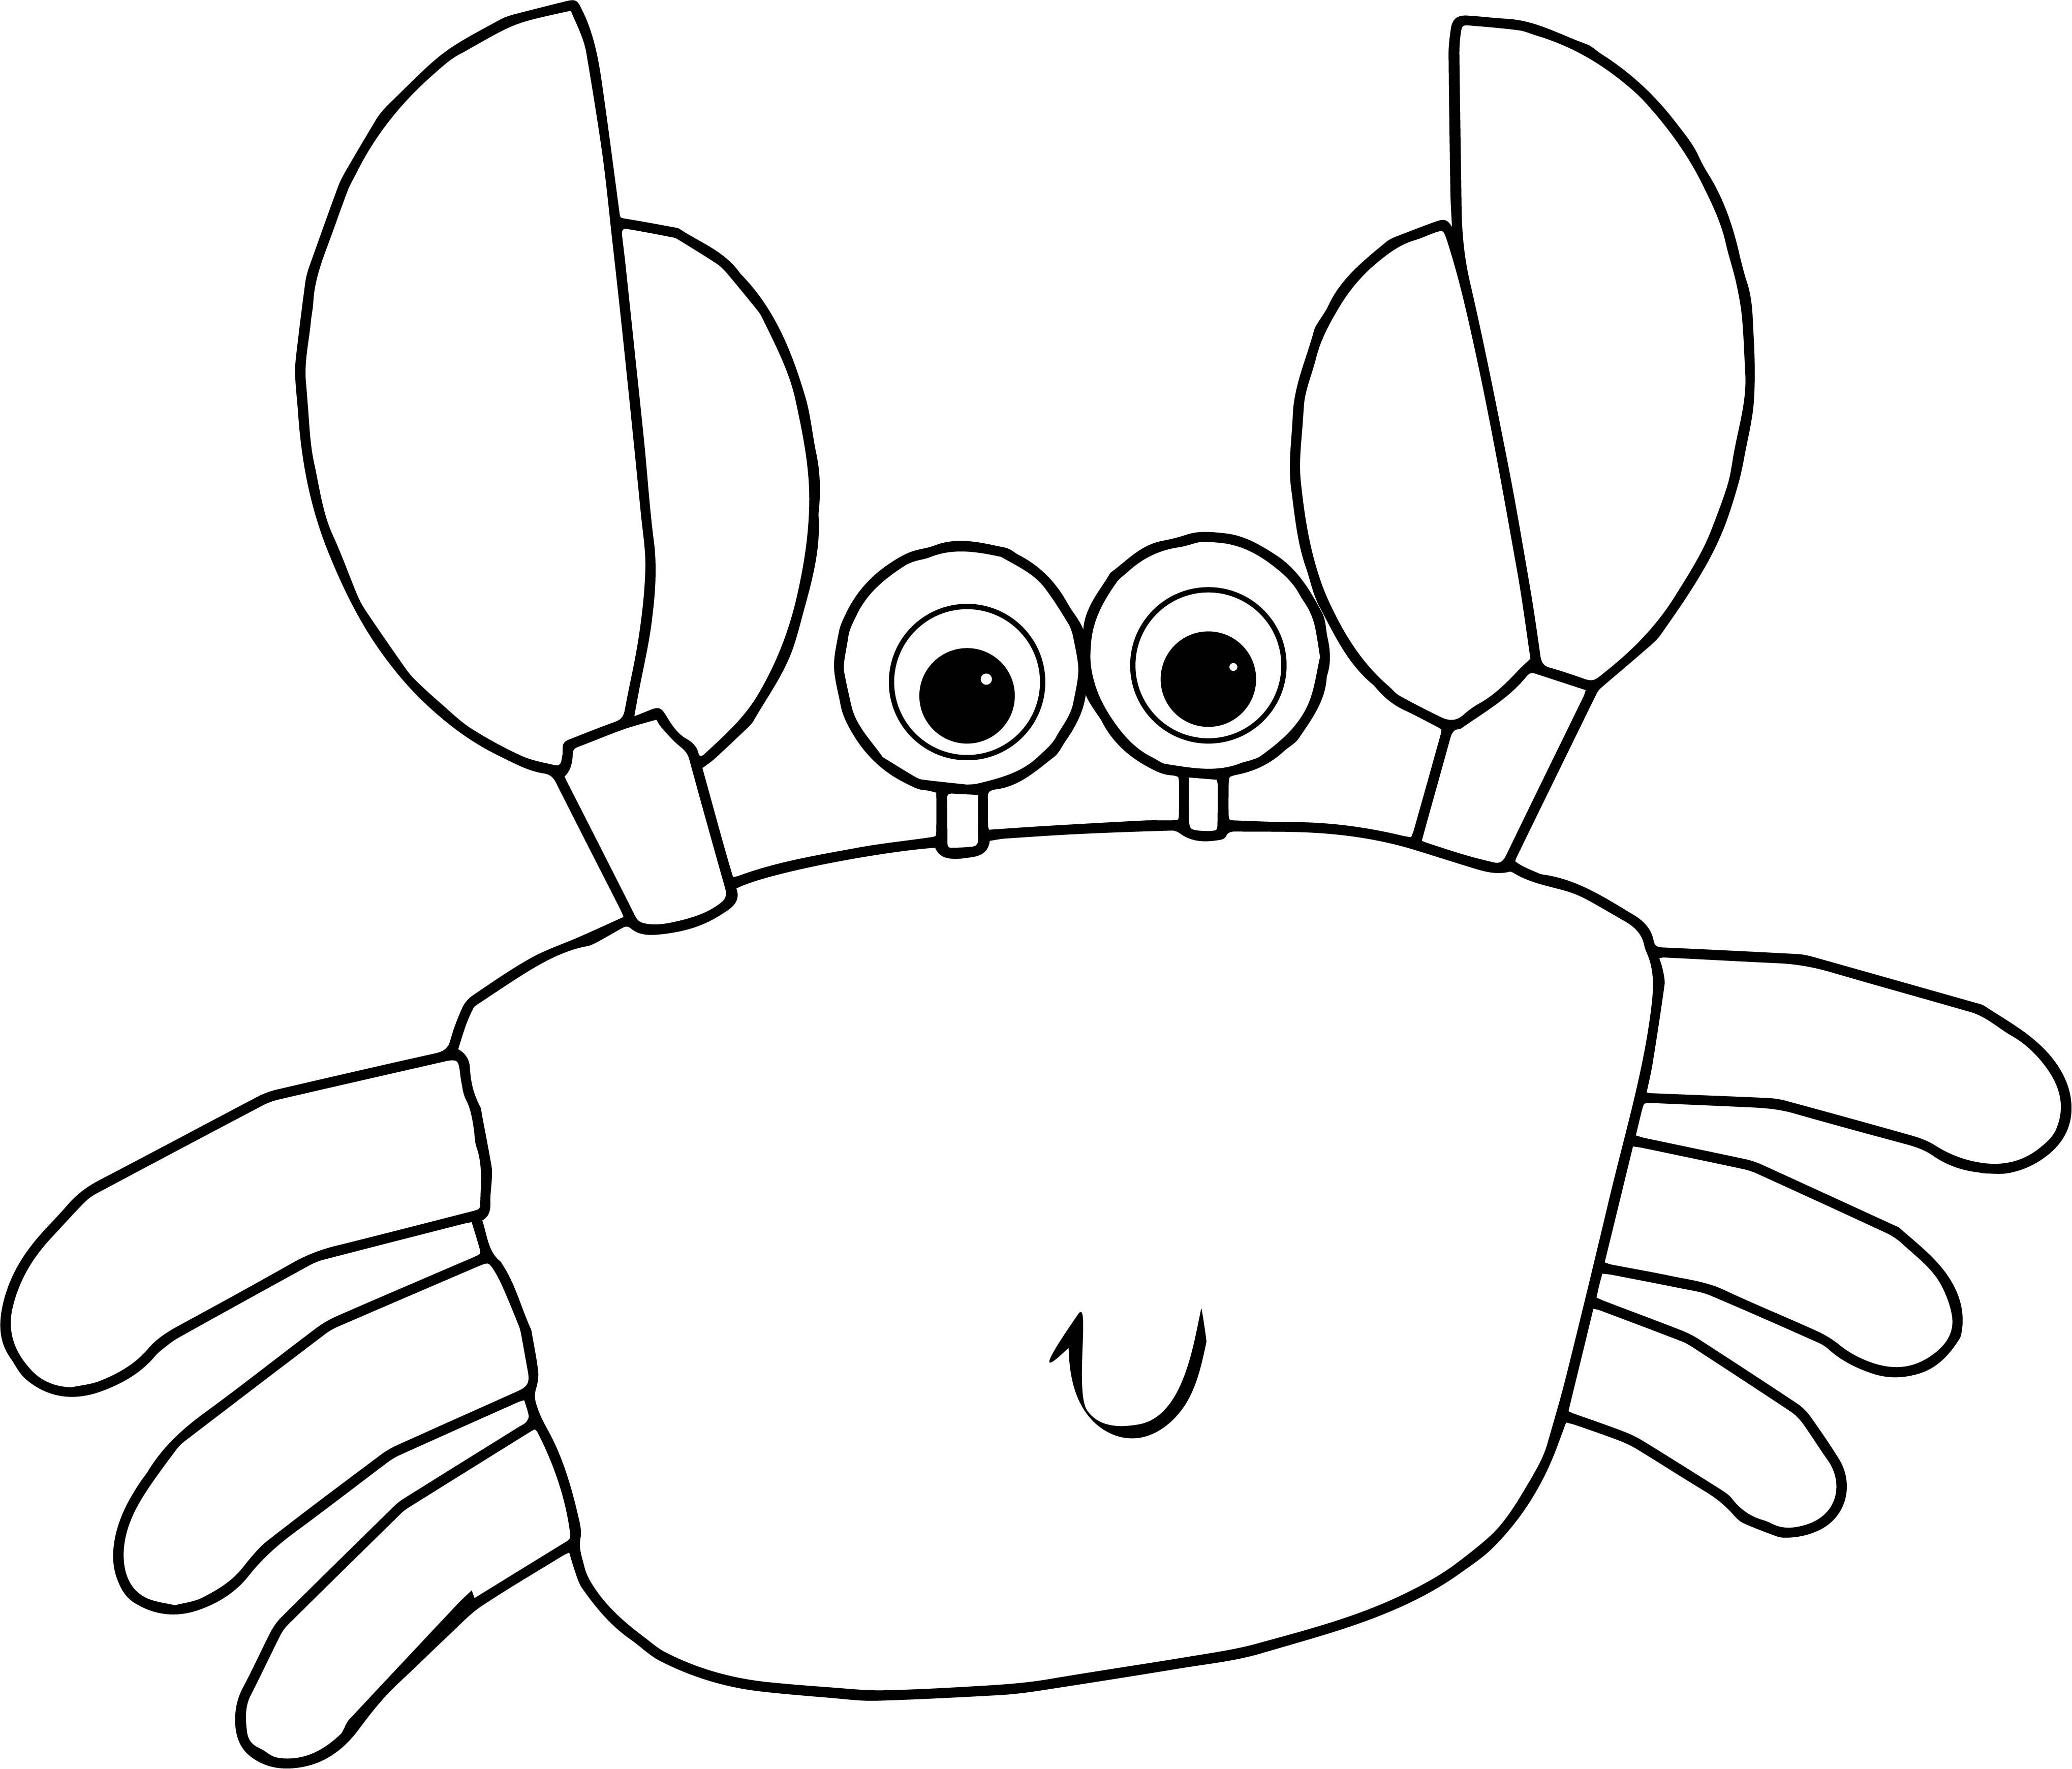 Awesome Crab Cartoon Coloring Page Crab Cartoon Cartoon Coloring Pages Horse Coloring Pages